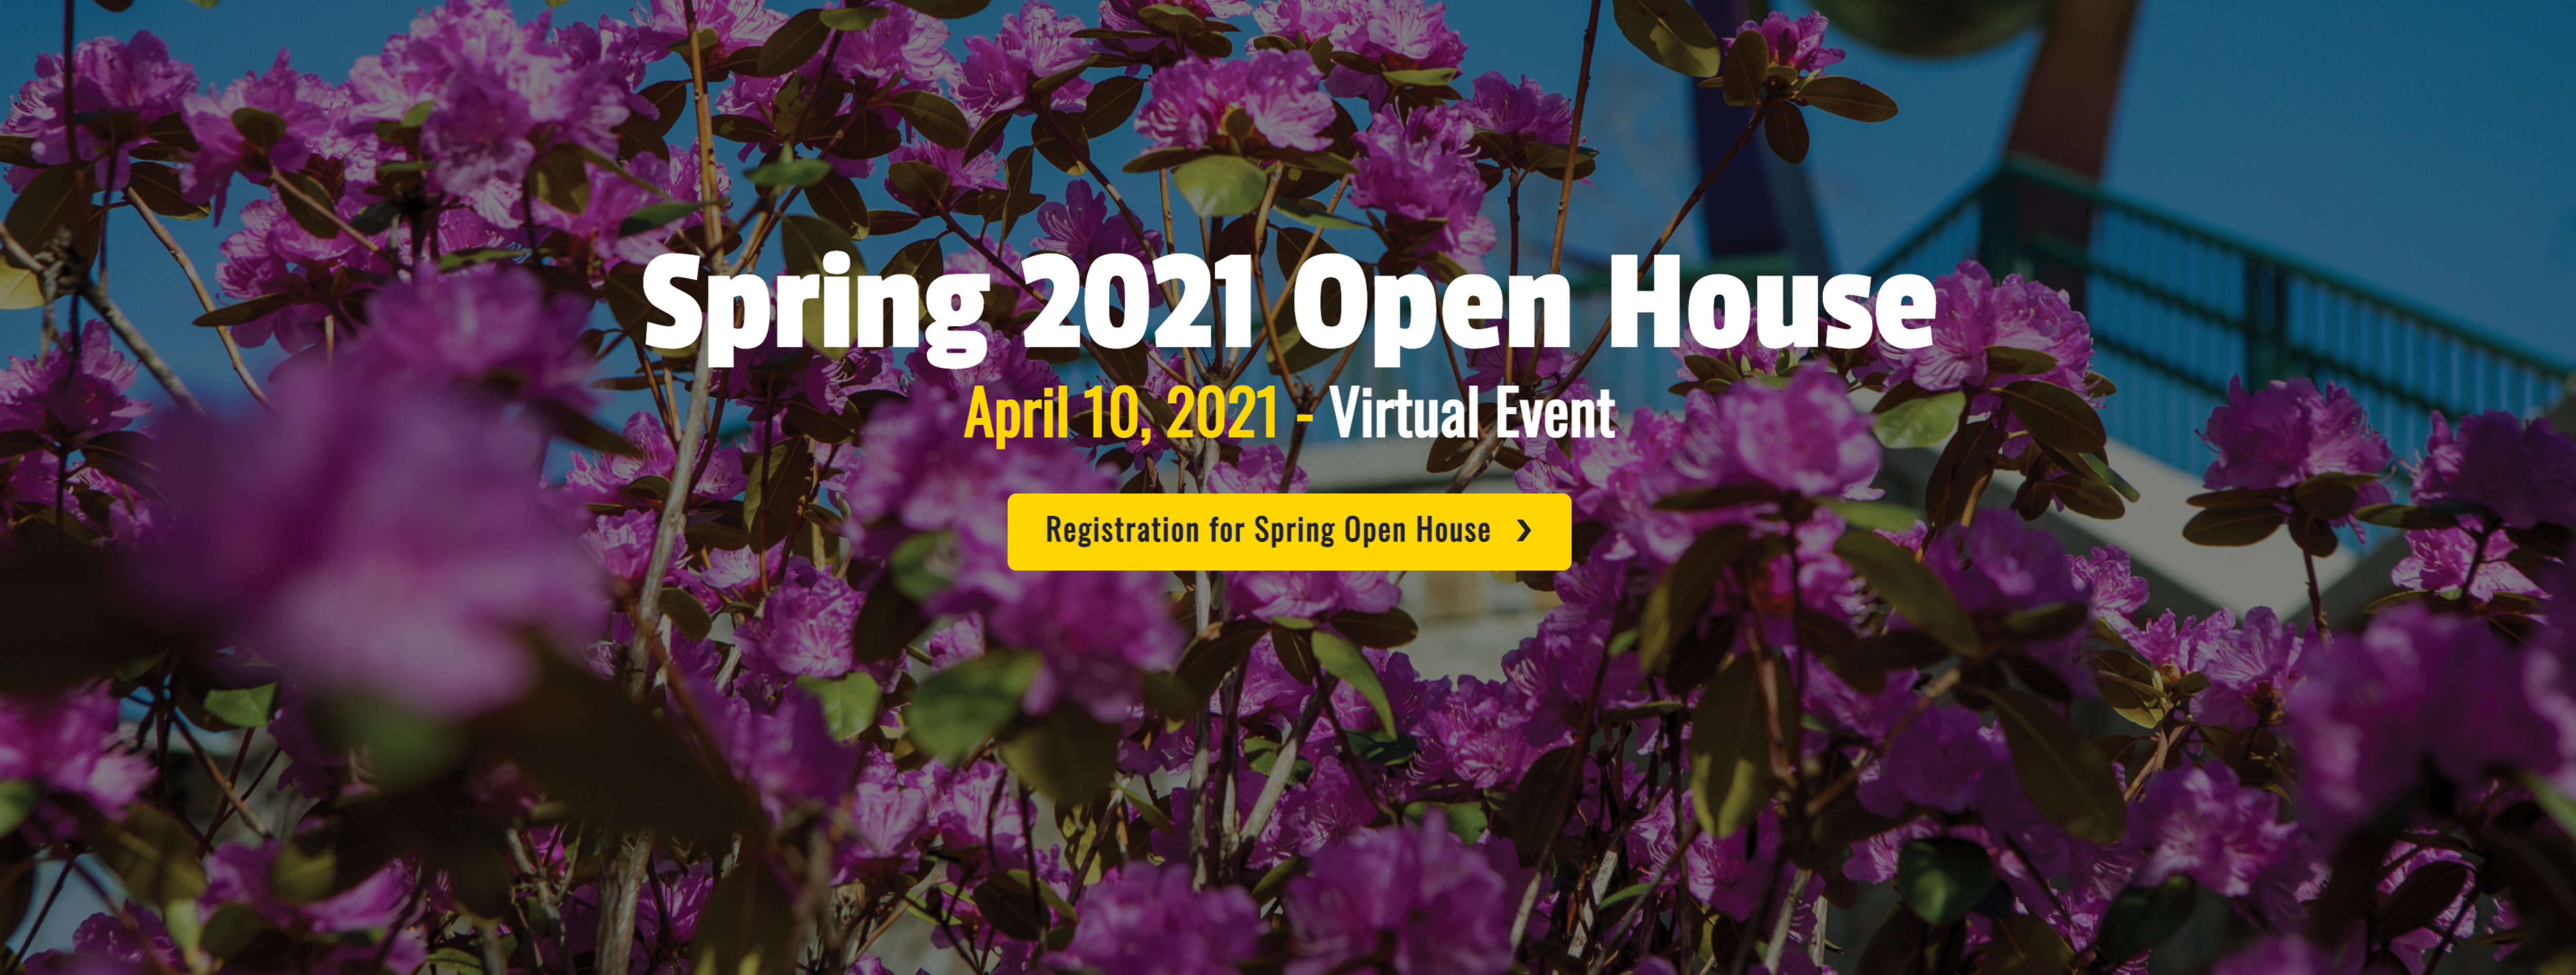 Spring 2021 Virtual Open House - Office of Admissions